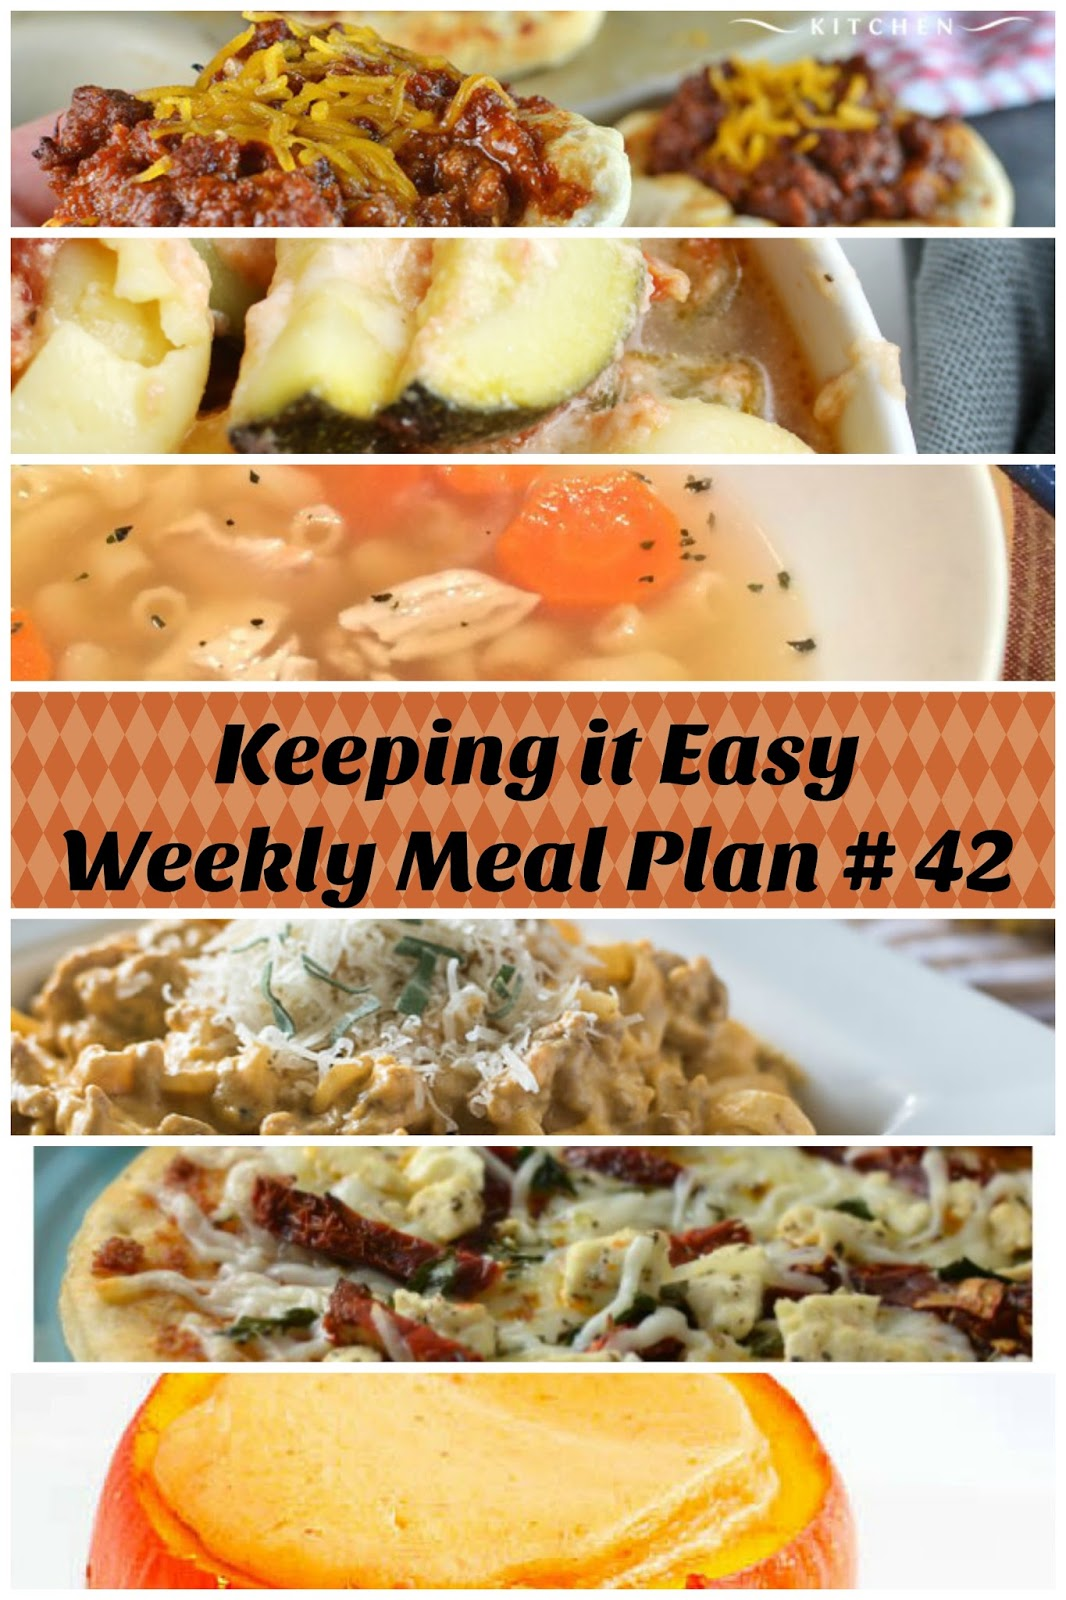 Easy Weekly Meal Plan #42 from My Fearless Kitchen. This week's meal plan includes Pumpkin Bread with Cream Cheese Icing, Cheesy Chicken & Veggie Tortellini Skillet, Chicken Soup with Rotisserie Noodles, Pumpkin & Sausage Alfredo, Mini BBQ Cheeseburger Cups, Sun-Dried Tomato Pizza, and Pumpkin Cheesecakes in Pumpkins.